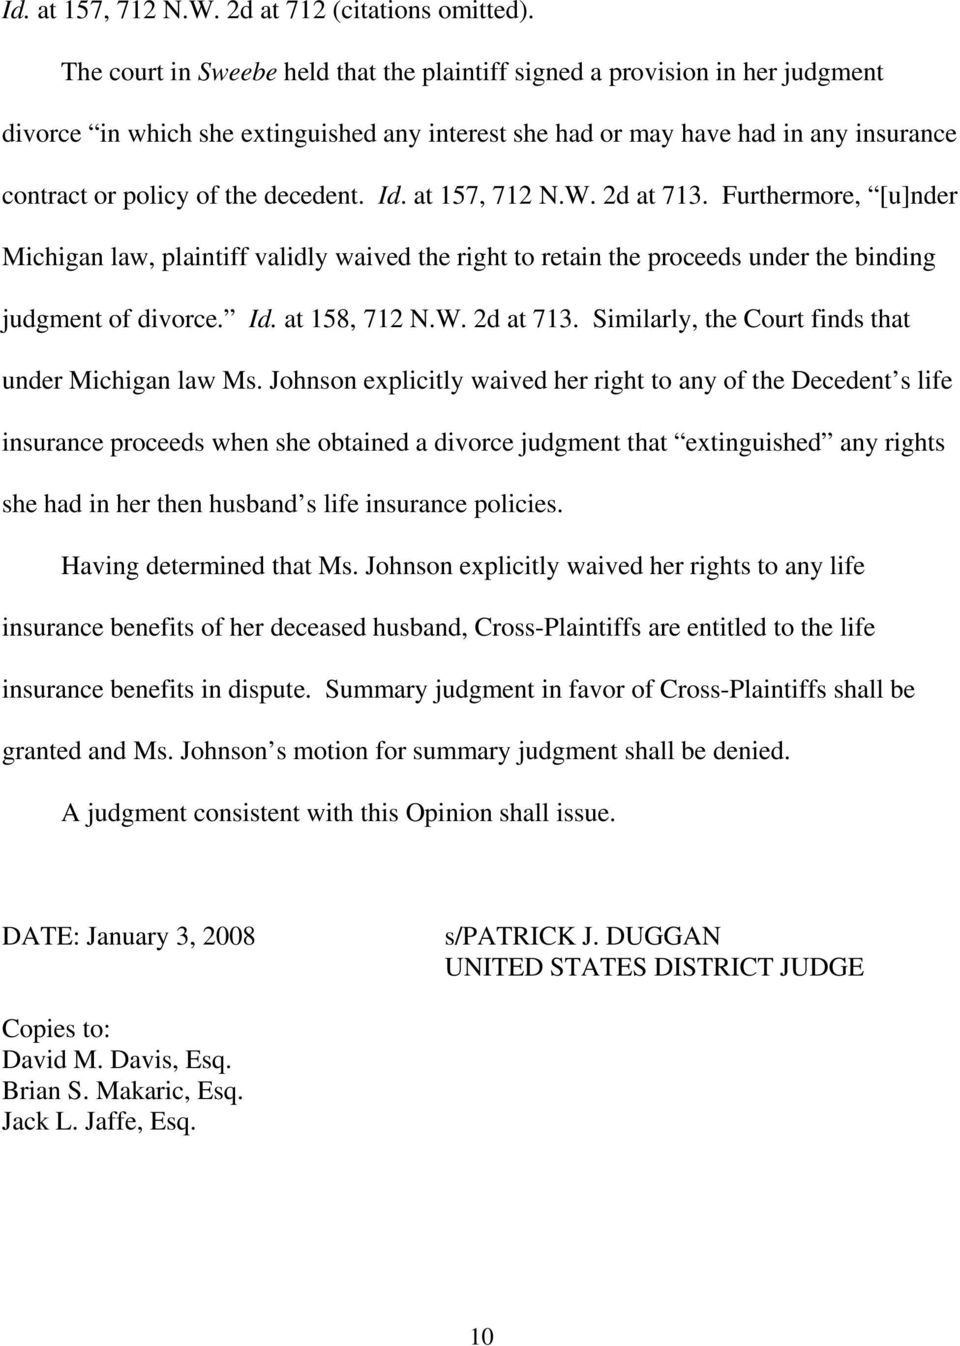 decedent. Id. at 157, 712 N.W. 2d at 713. Furthermore, [u]nder Michigan law, plaintiff validly waived the right to retain the proceeds under the binding judgment of divorce. Id. at 158, 712 N.W. 2d at 713. Similarly, the Court finds that under Michigan law Ms.